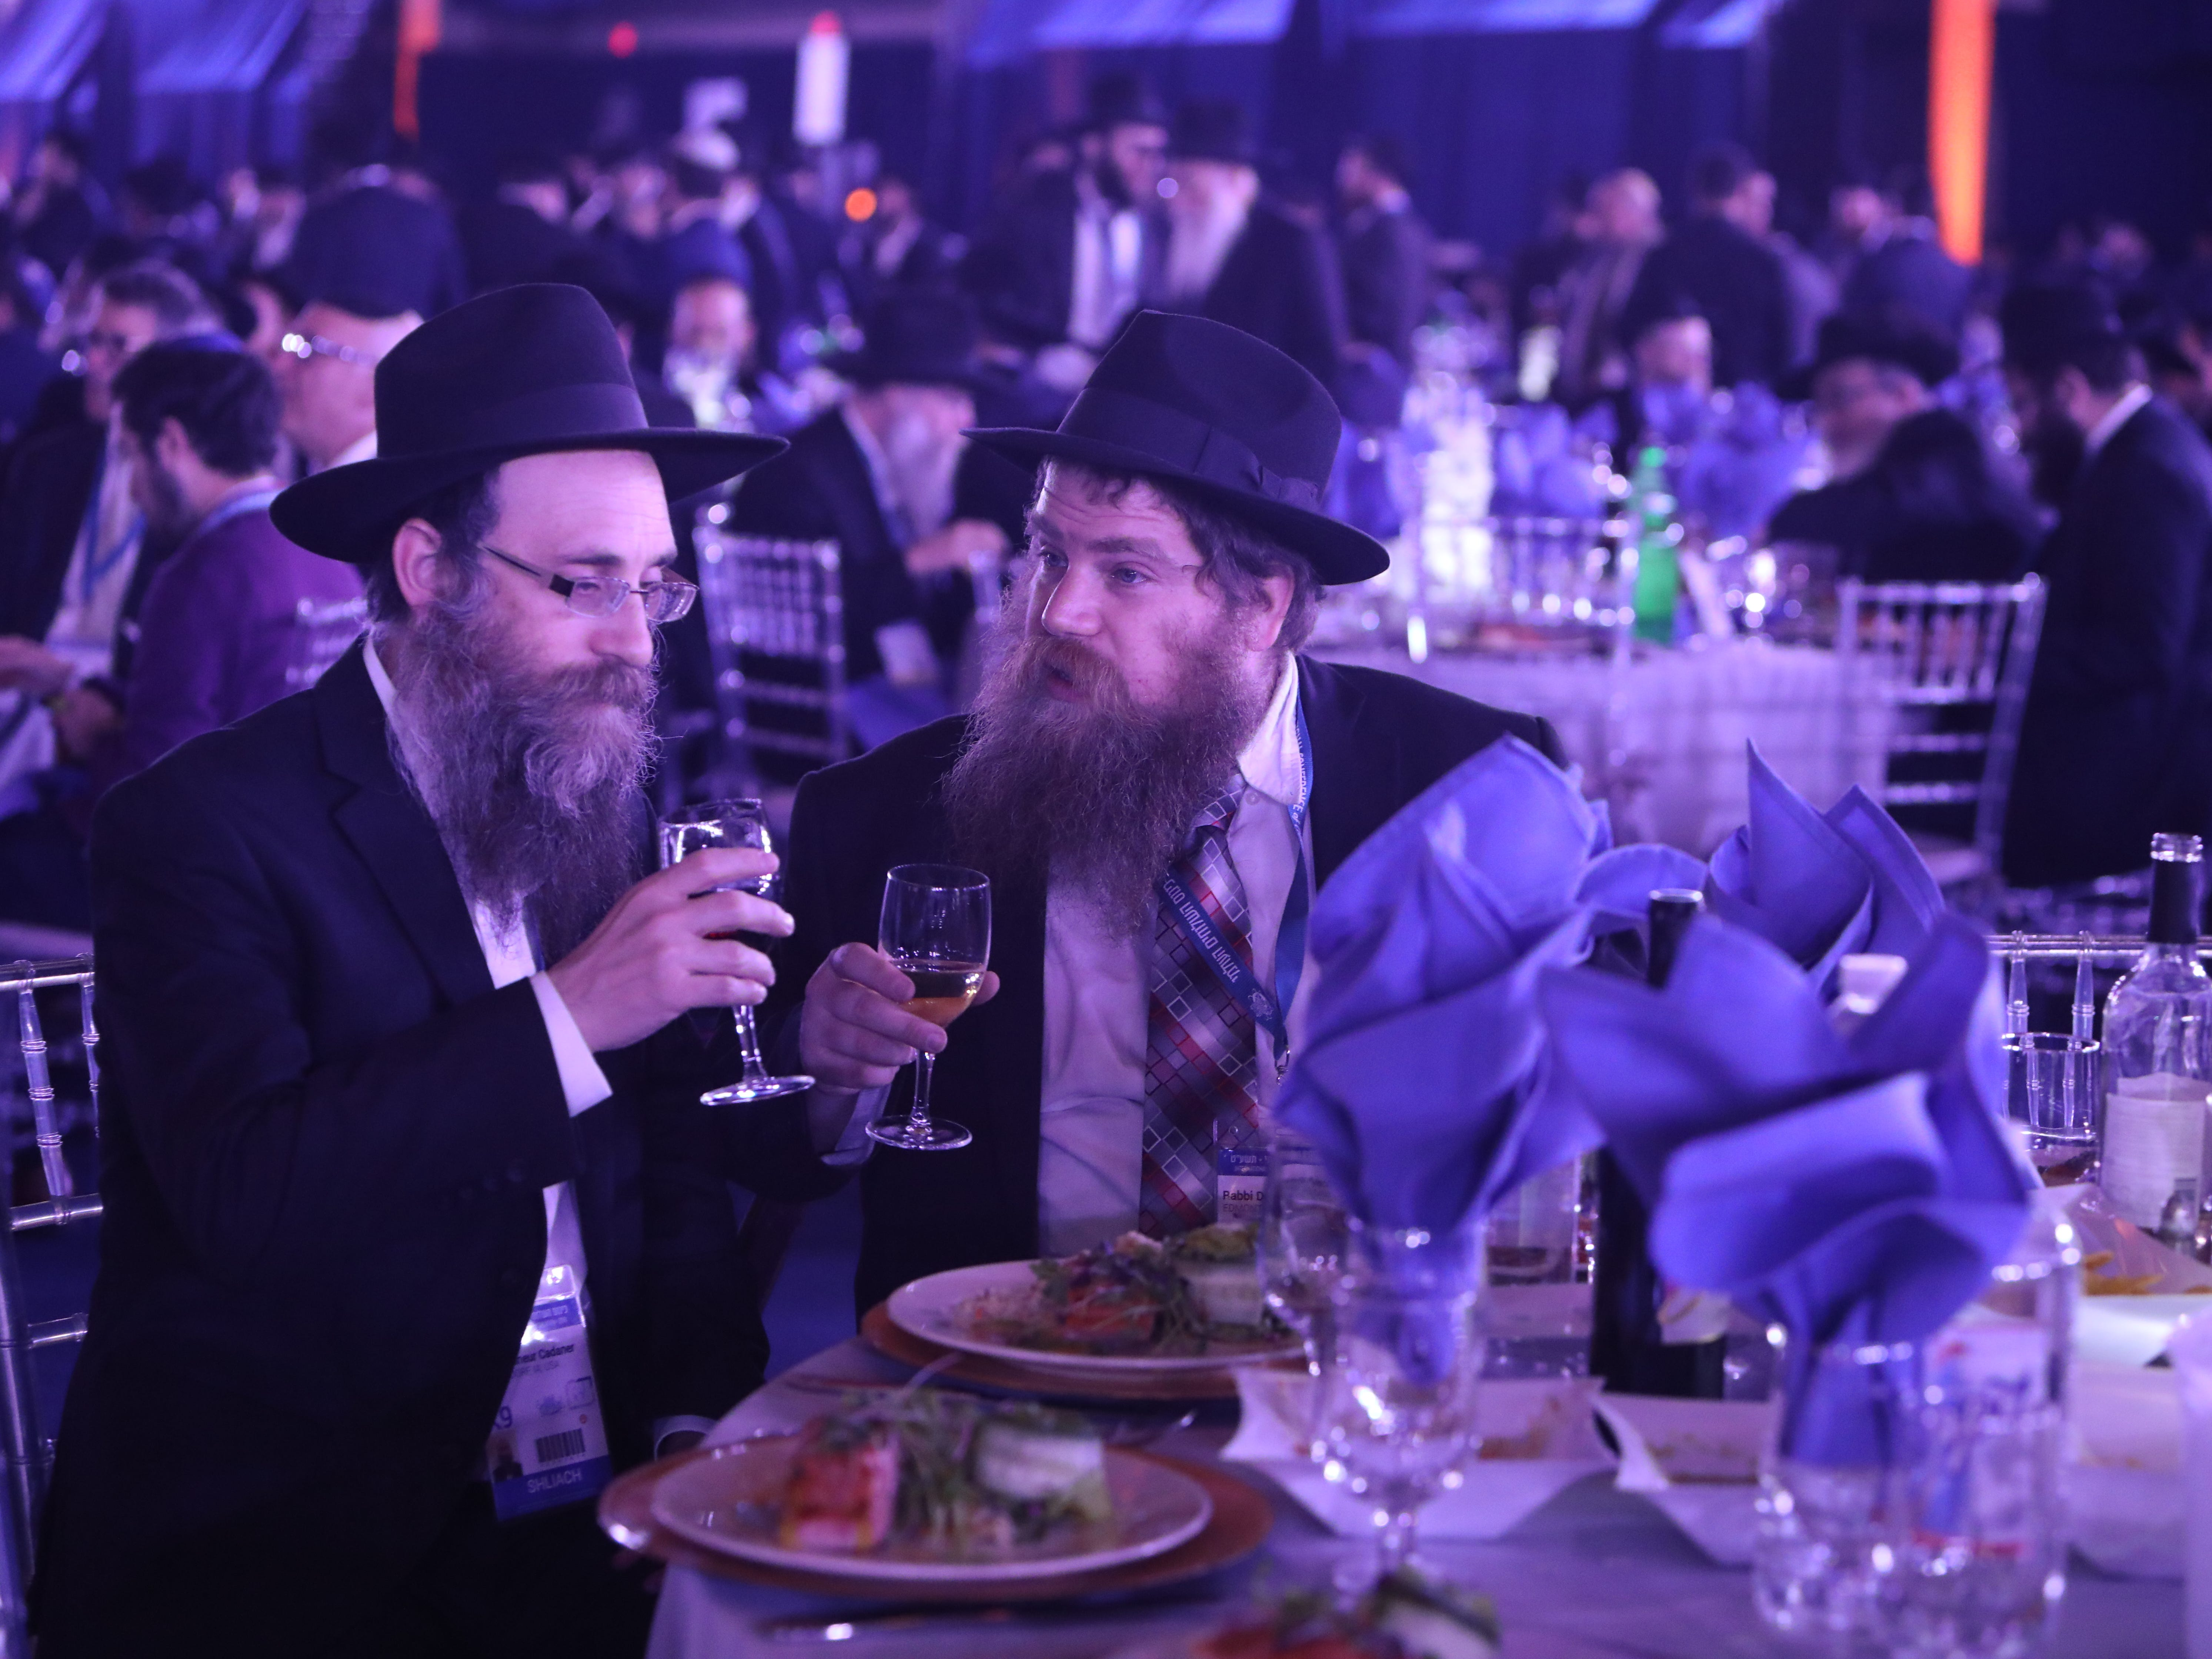 Rabbi Shneur Cadaner, left, of Bettendorf, Iowa and Rabbi Dovid Pinson of Edmonton, Canada attend a banquet at Rockland Community College Nov. 4, 2018 in Suffern, N.Y. They are among 5,600 rabbis and guests from 100 countries in New York for the International Conference of Chabad-Lubavitch Emissaries, an annual event aimed at strengthening Jewish awareness and practice around the world. This year's gathering comes only days after the anti-Semitic shooting in Pittsburgh which has been a focal point of the conference.